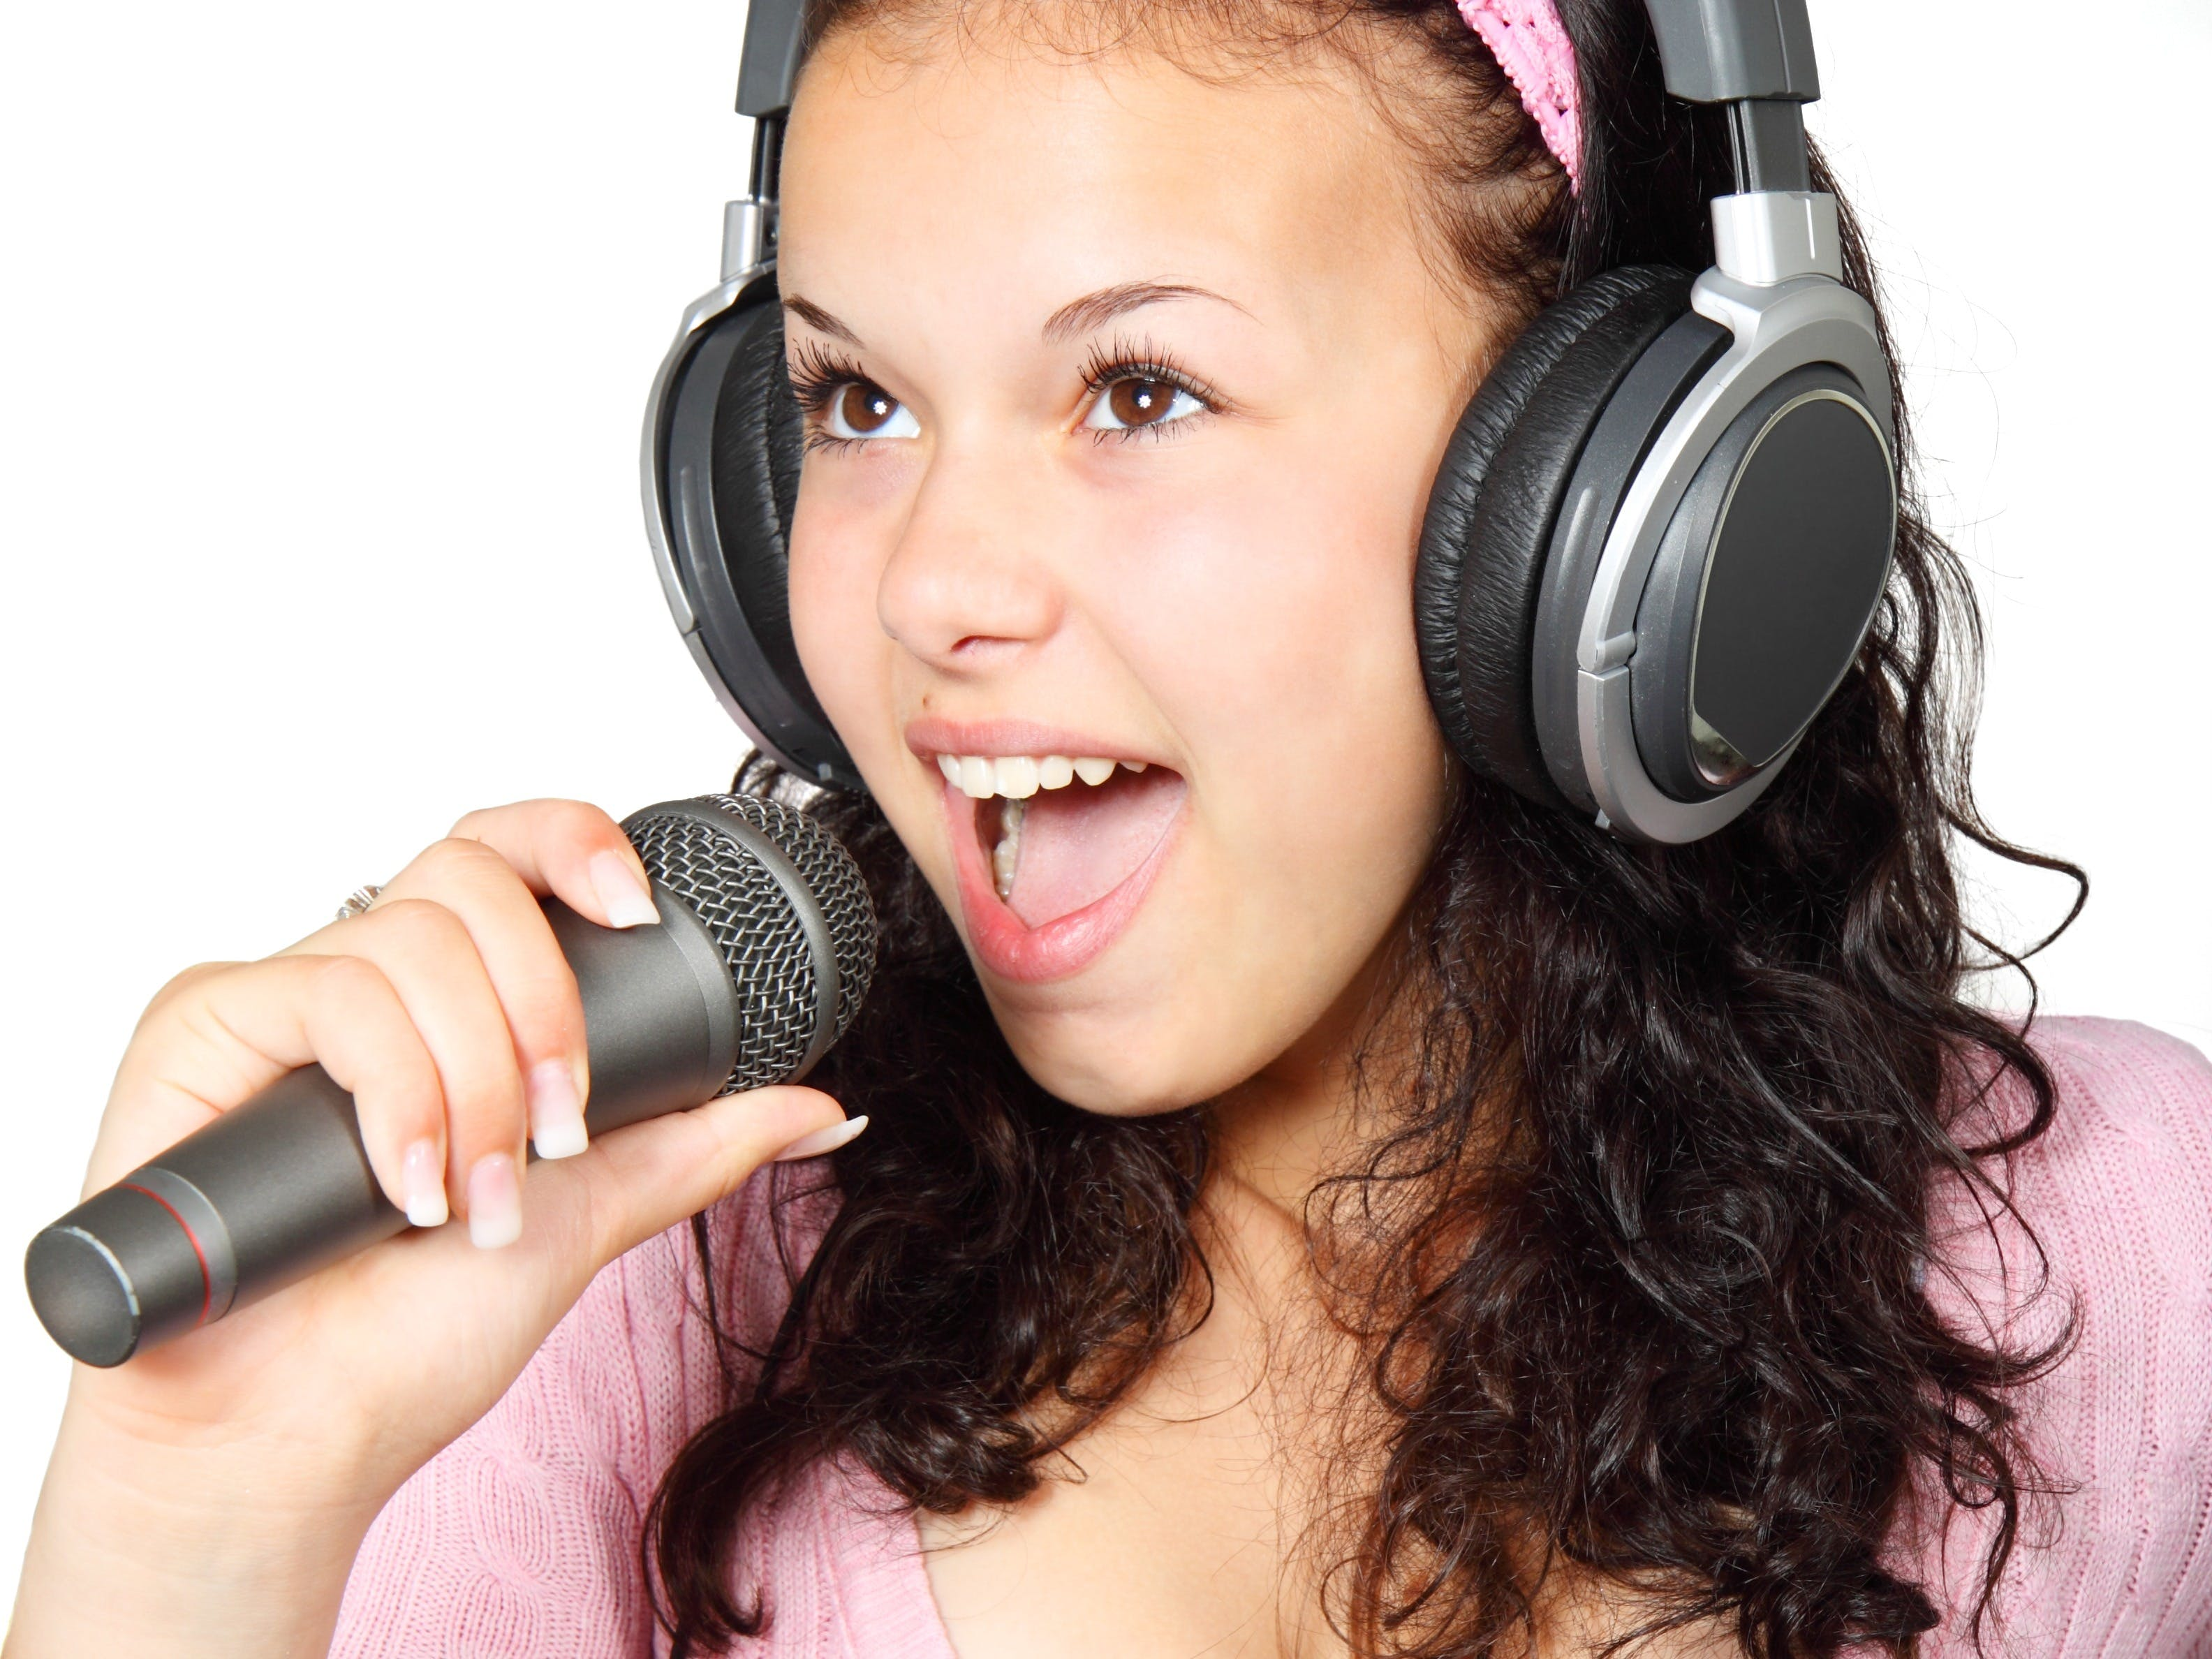 A Girl Holding a Microphone With a Headphone